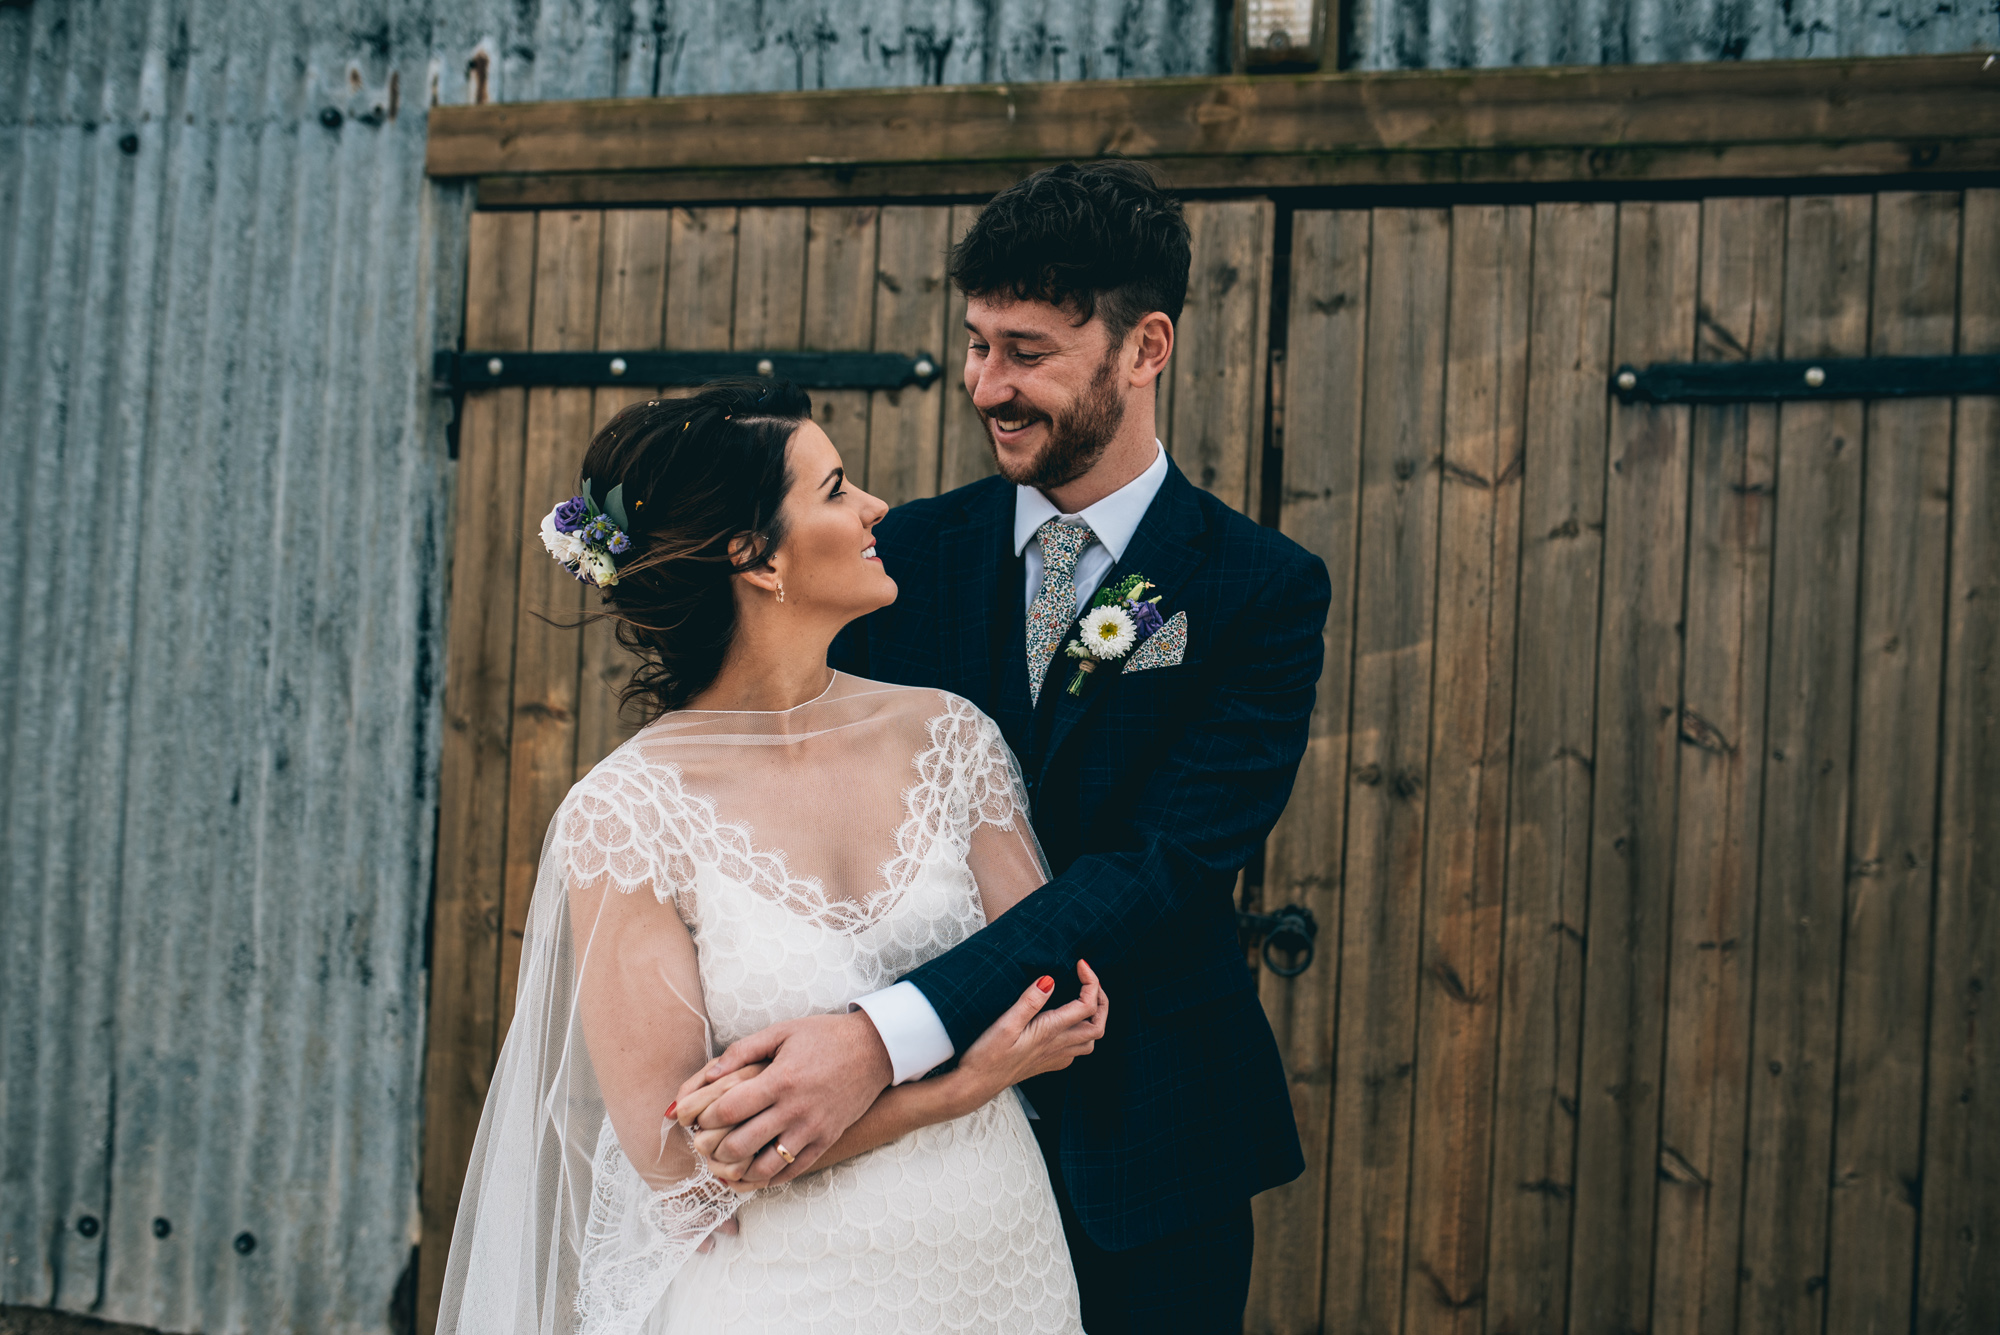 Kate-Beaumont-Sheffield-Lucy-Bohemian-Lace-Dress-Barn-Wedding-Cumbria-23.jpg